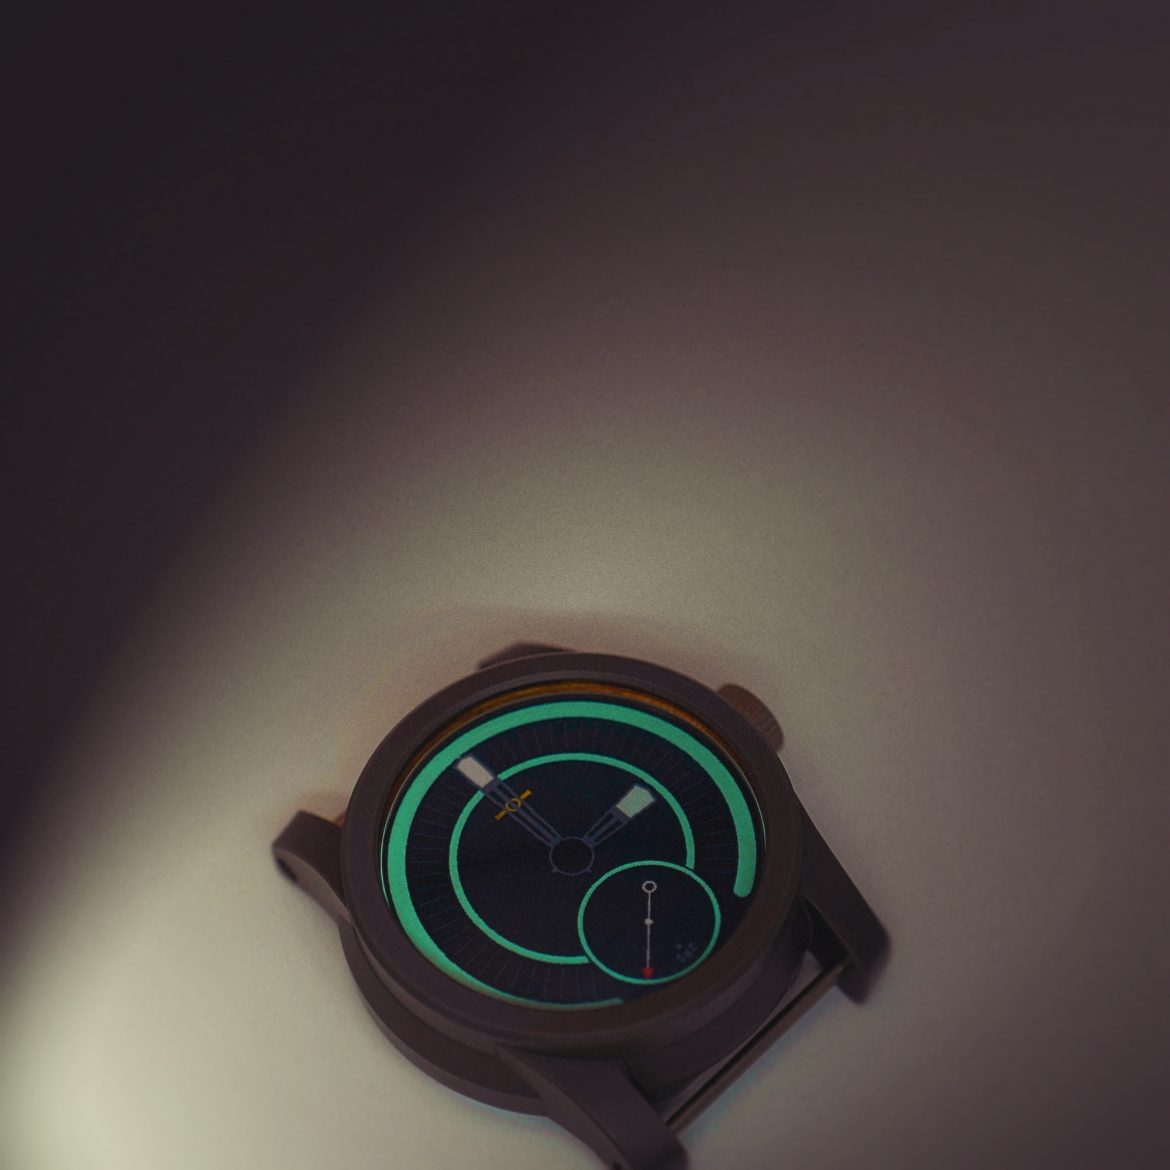 Obscura Dial